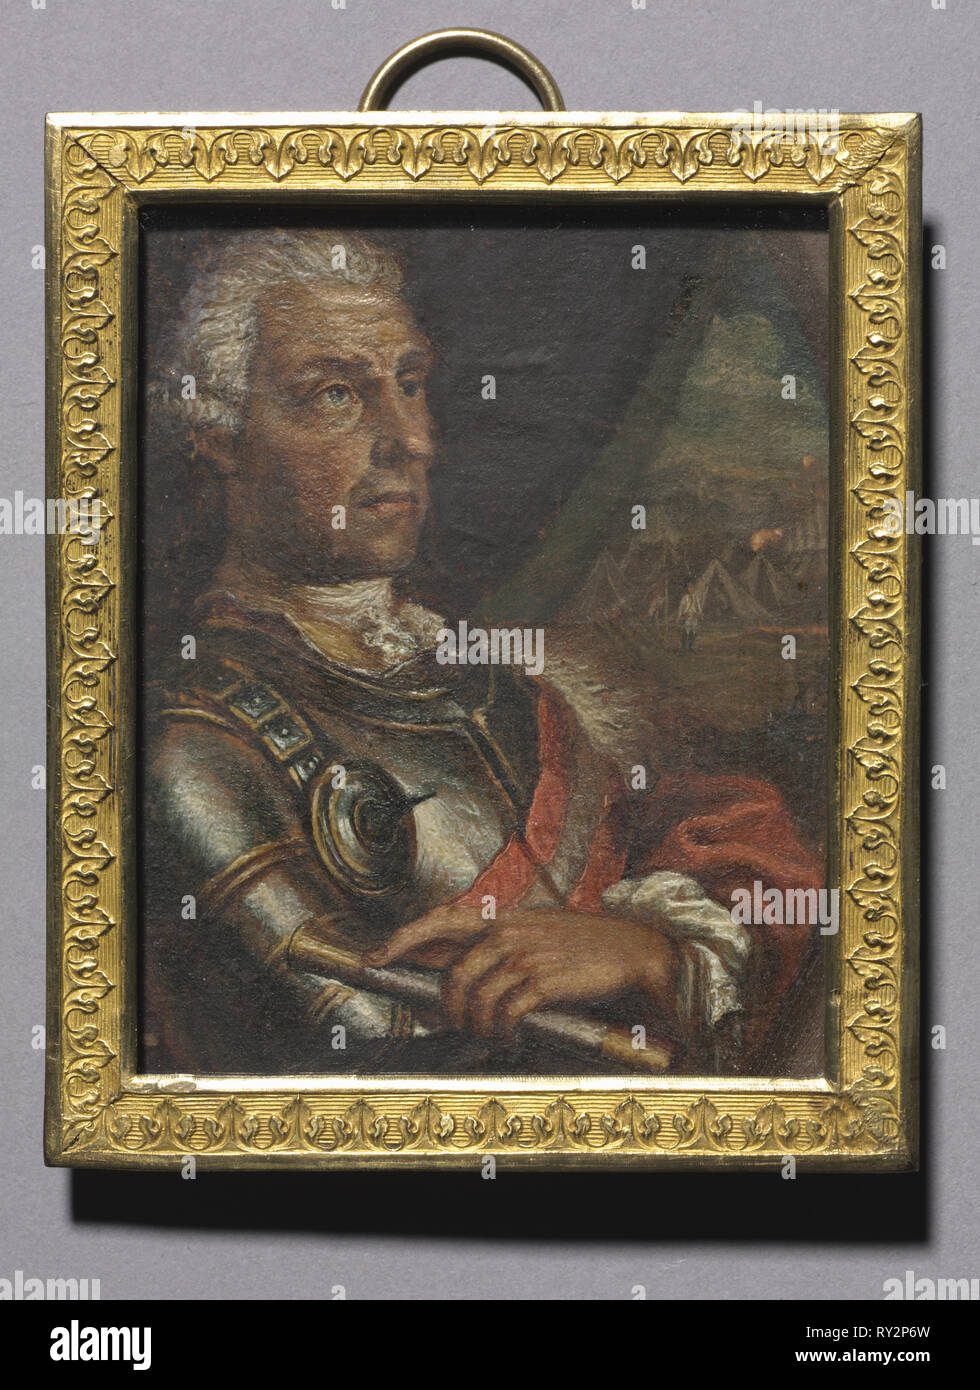 Portrait of Baron Ernst Gideon Freiherr von Laudon, 1800s. Russia, 19th century. Oil on paper mounted on wood; framed: 8.2 x 6.8 cm (3 1/4 x 2 11/16 in.); unframed: 7.2 x 5.8 cm (2 13/16 x 2 5/16 in - Stock Image